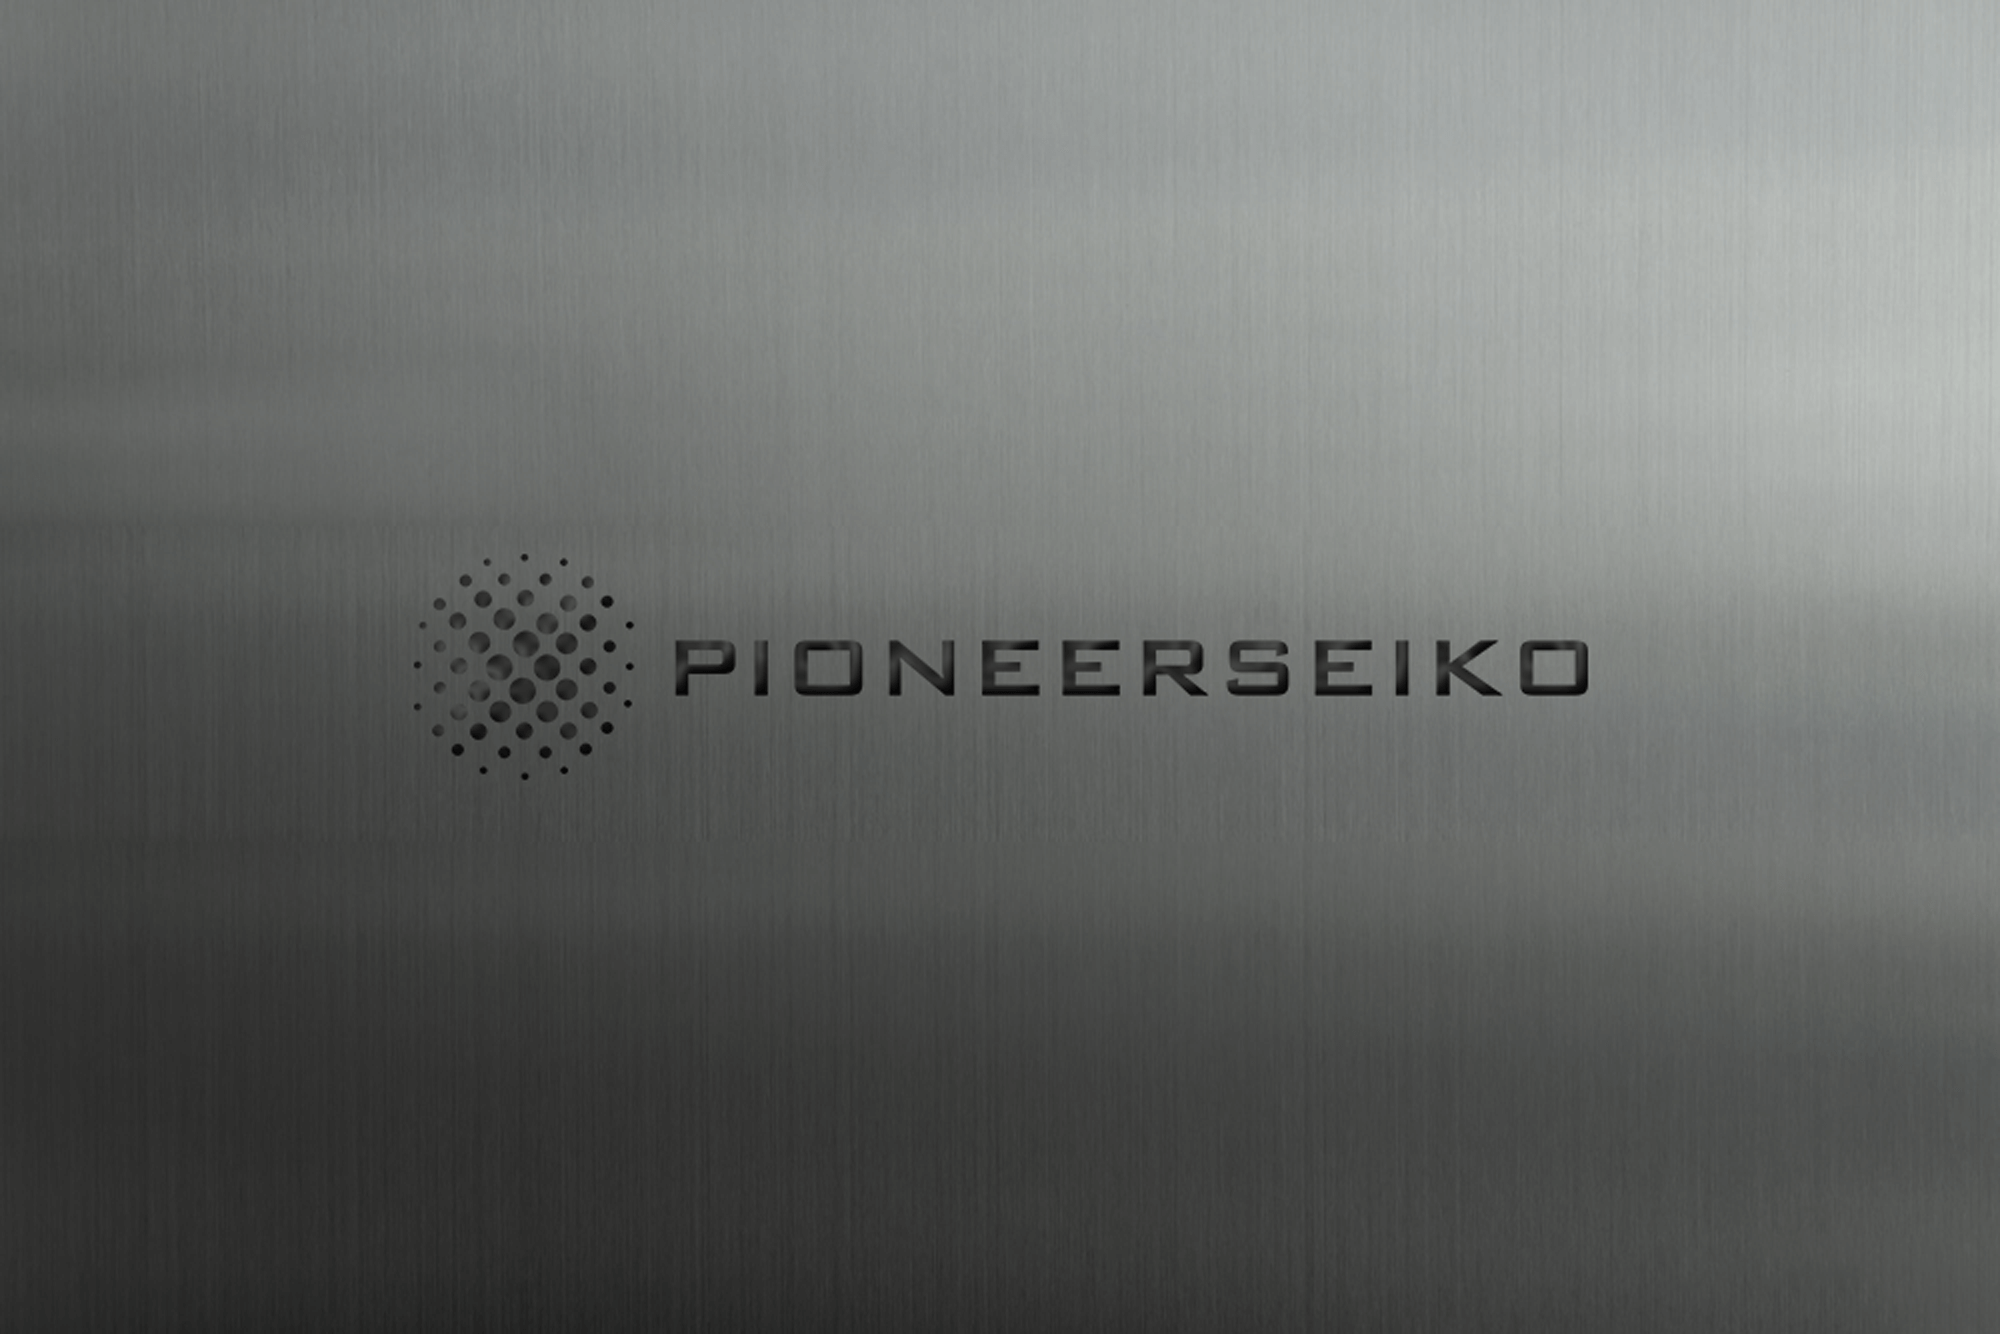 Pioneer Seiko Co., Ltd.|Hyogo|Tottori|